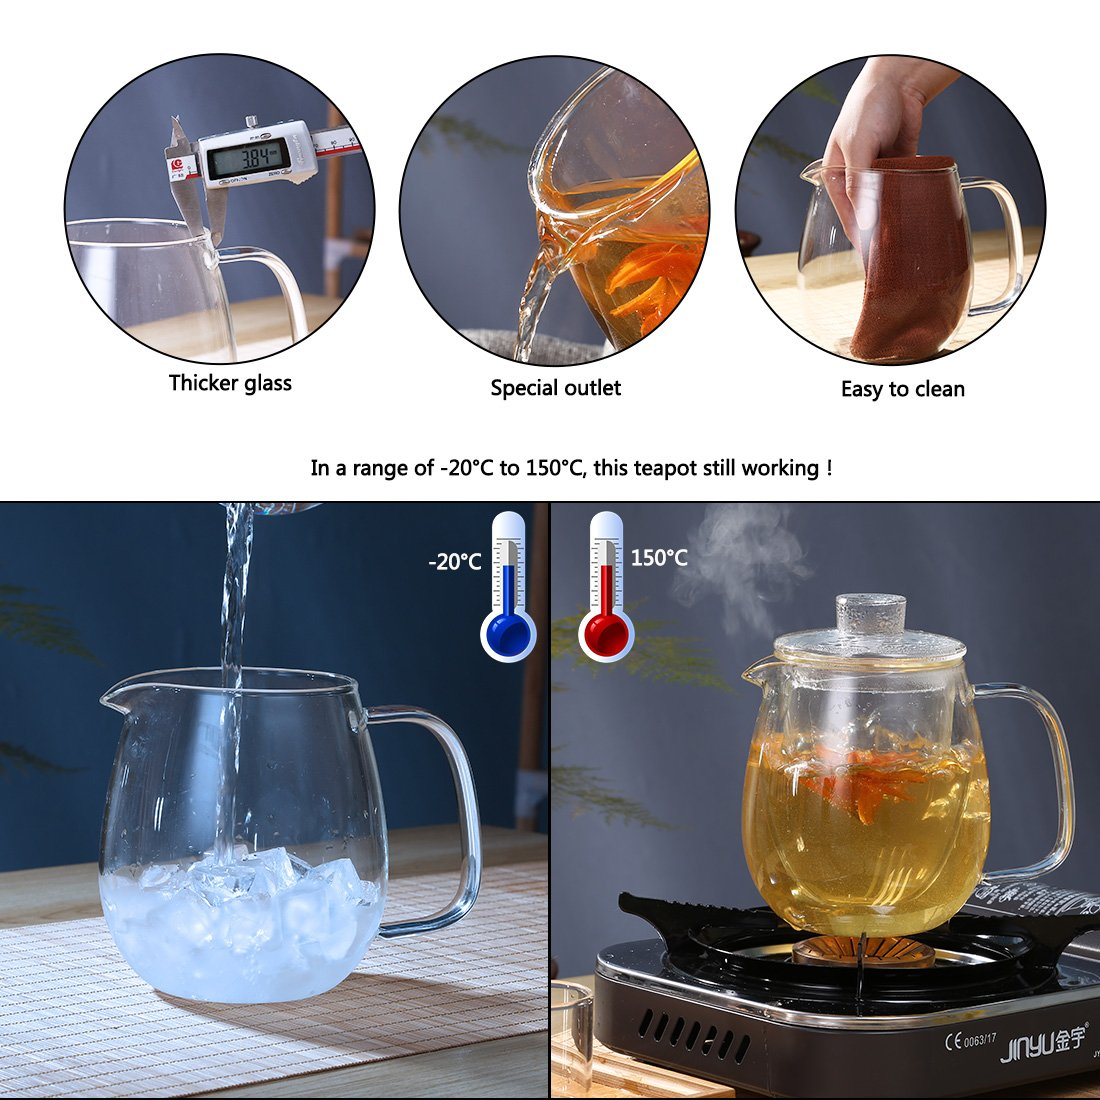 oneisall Glass Pitcher With Lid & Infuser - Borosilicate Glass Carafe 40oz/1200ml BPA-FREE Heat-resistant,Perfect For Hot&Cold Water,Tea,Juice,milk DHTGYBL581 (1200ML) by oneisall (Image #2)